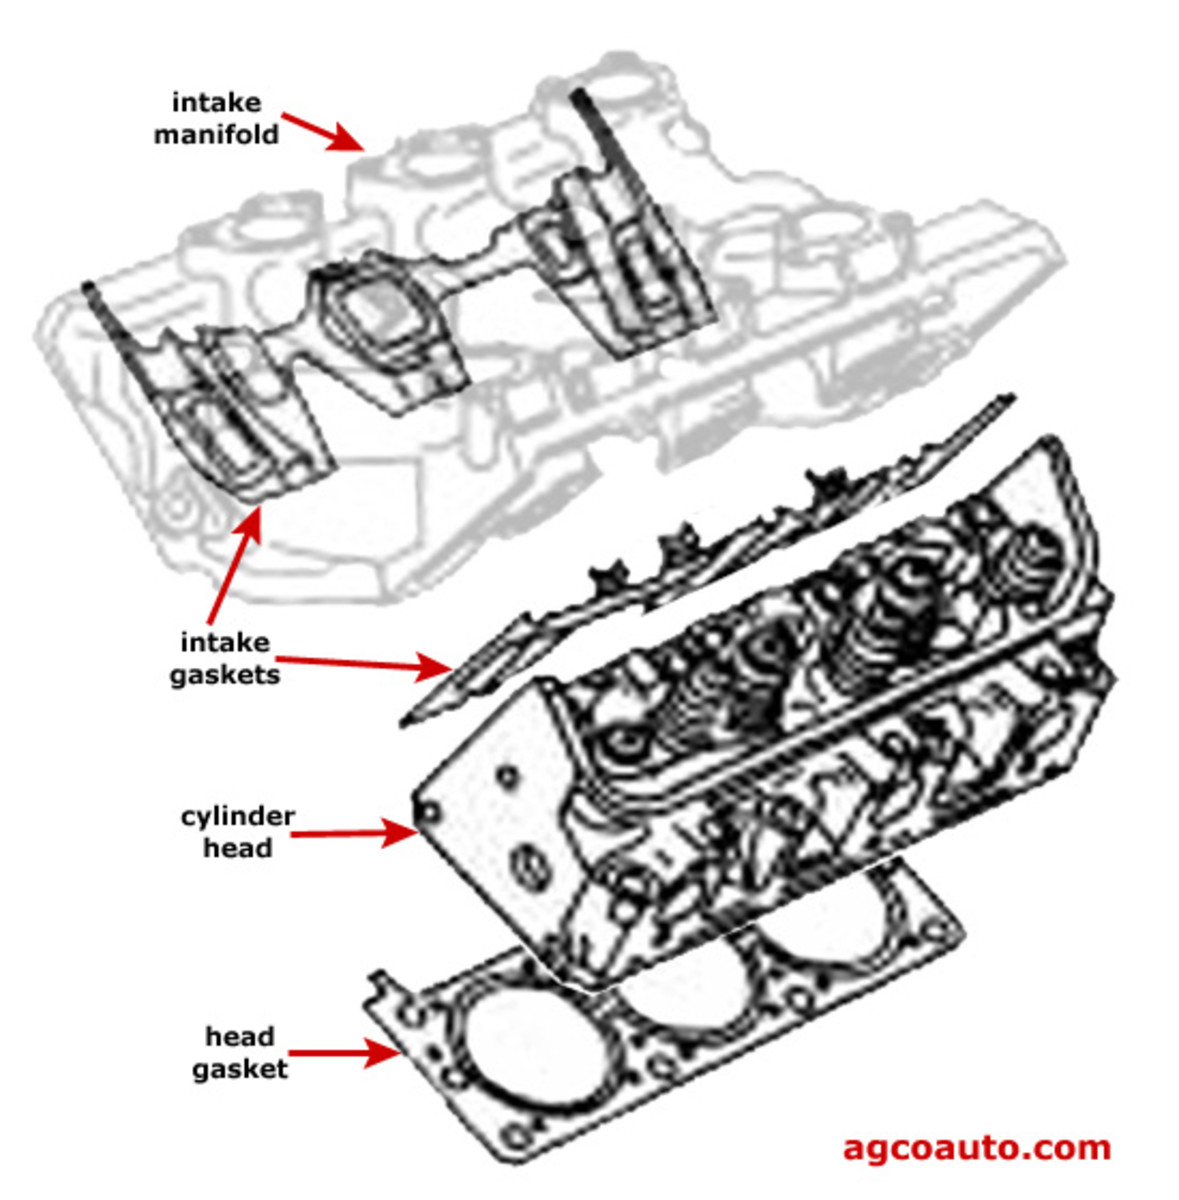 Diagram Showing Intake Gasket Location